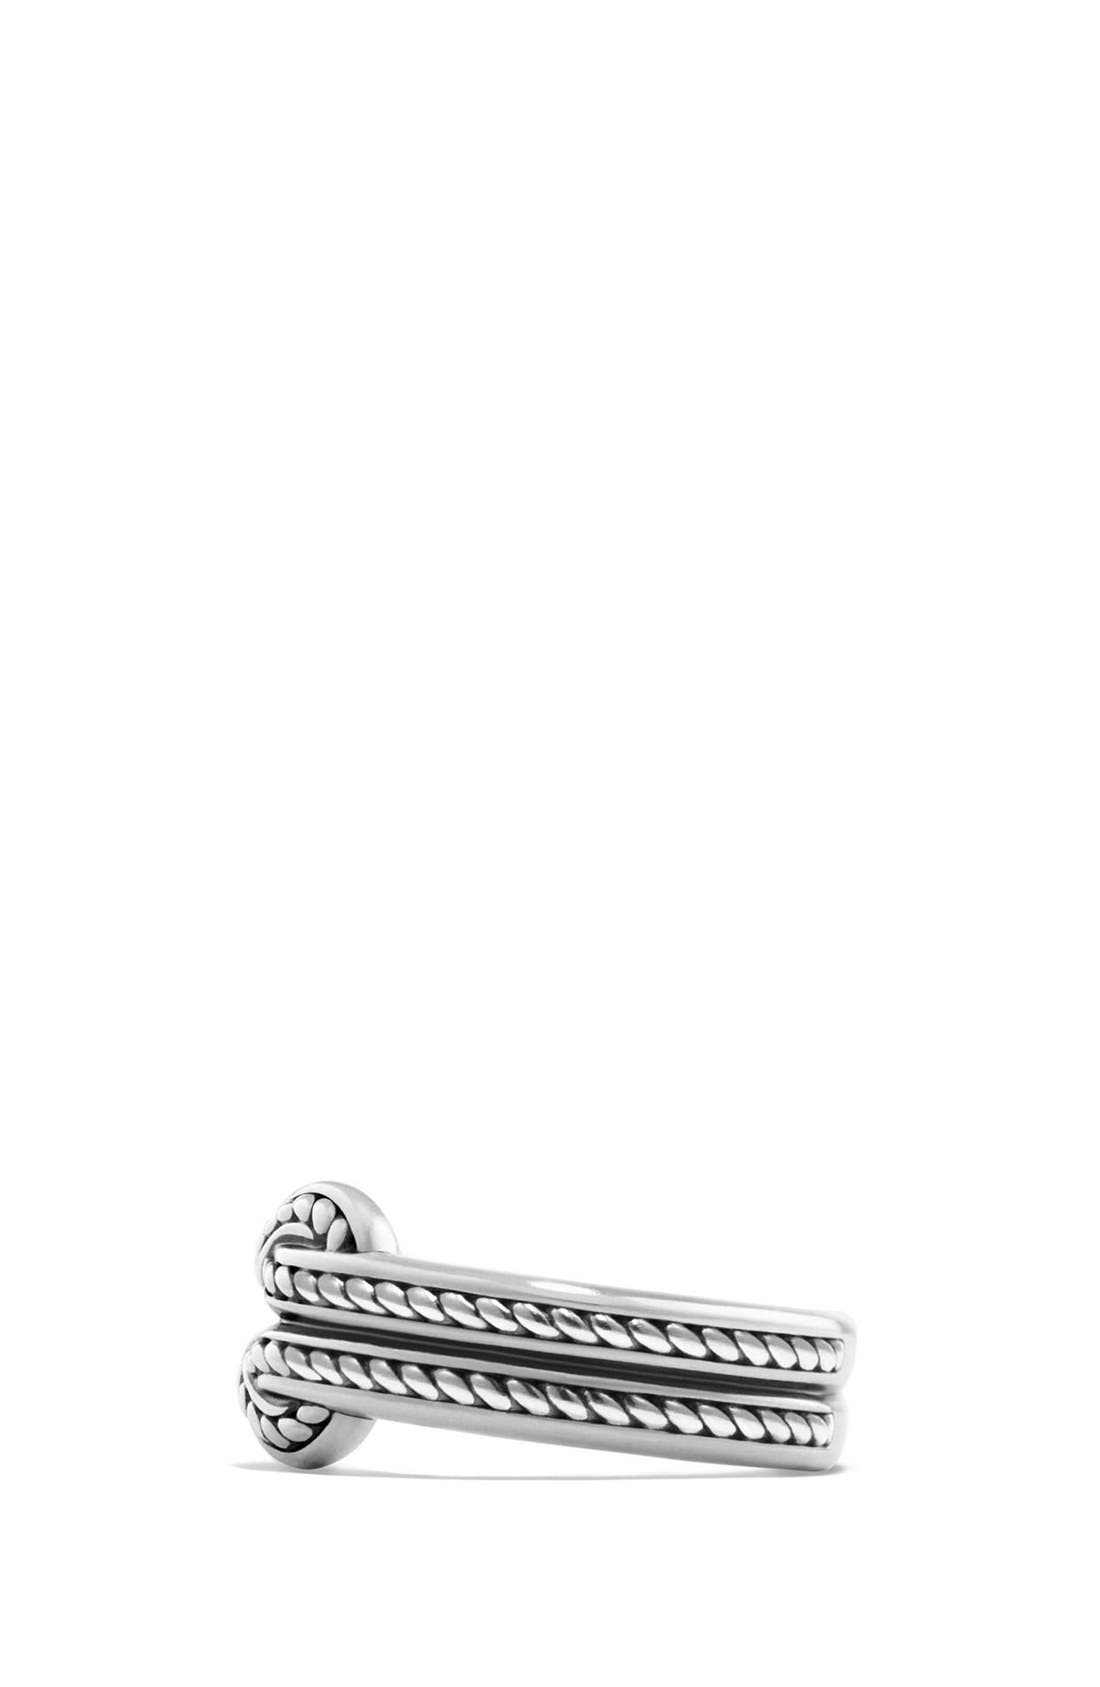 'Maritime' Reef Knot Band Ring,                             Alternate thumbnail 3, color,                             040